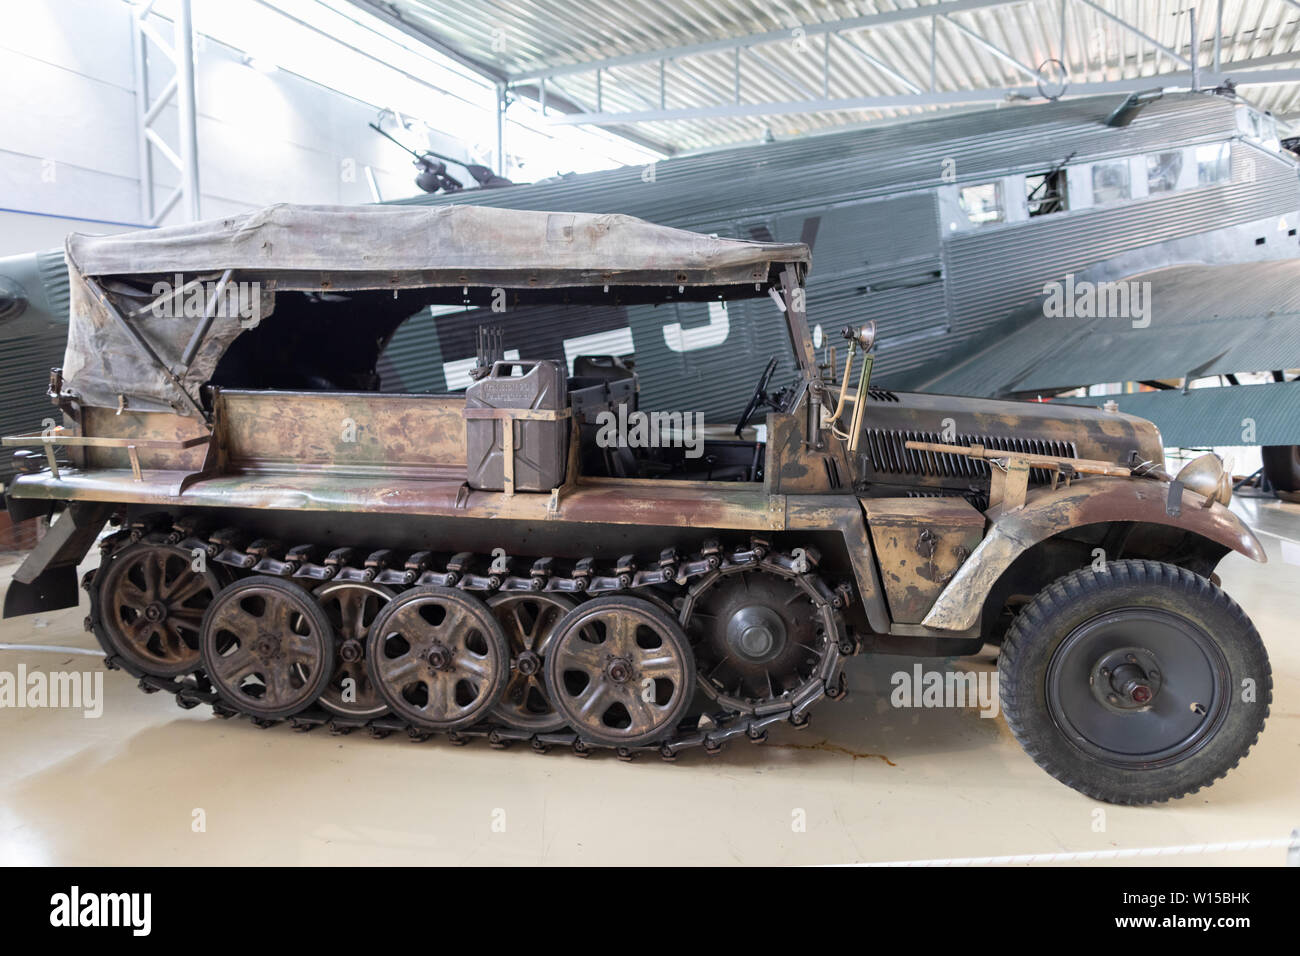 A half-track military vehicle used by the German Wehrmacht Heer, Luftwaffe and Waffen-SS during the Second World War on museum display at Gardemoen. Stock Photo